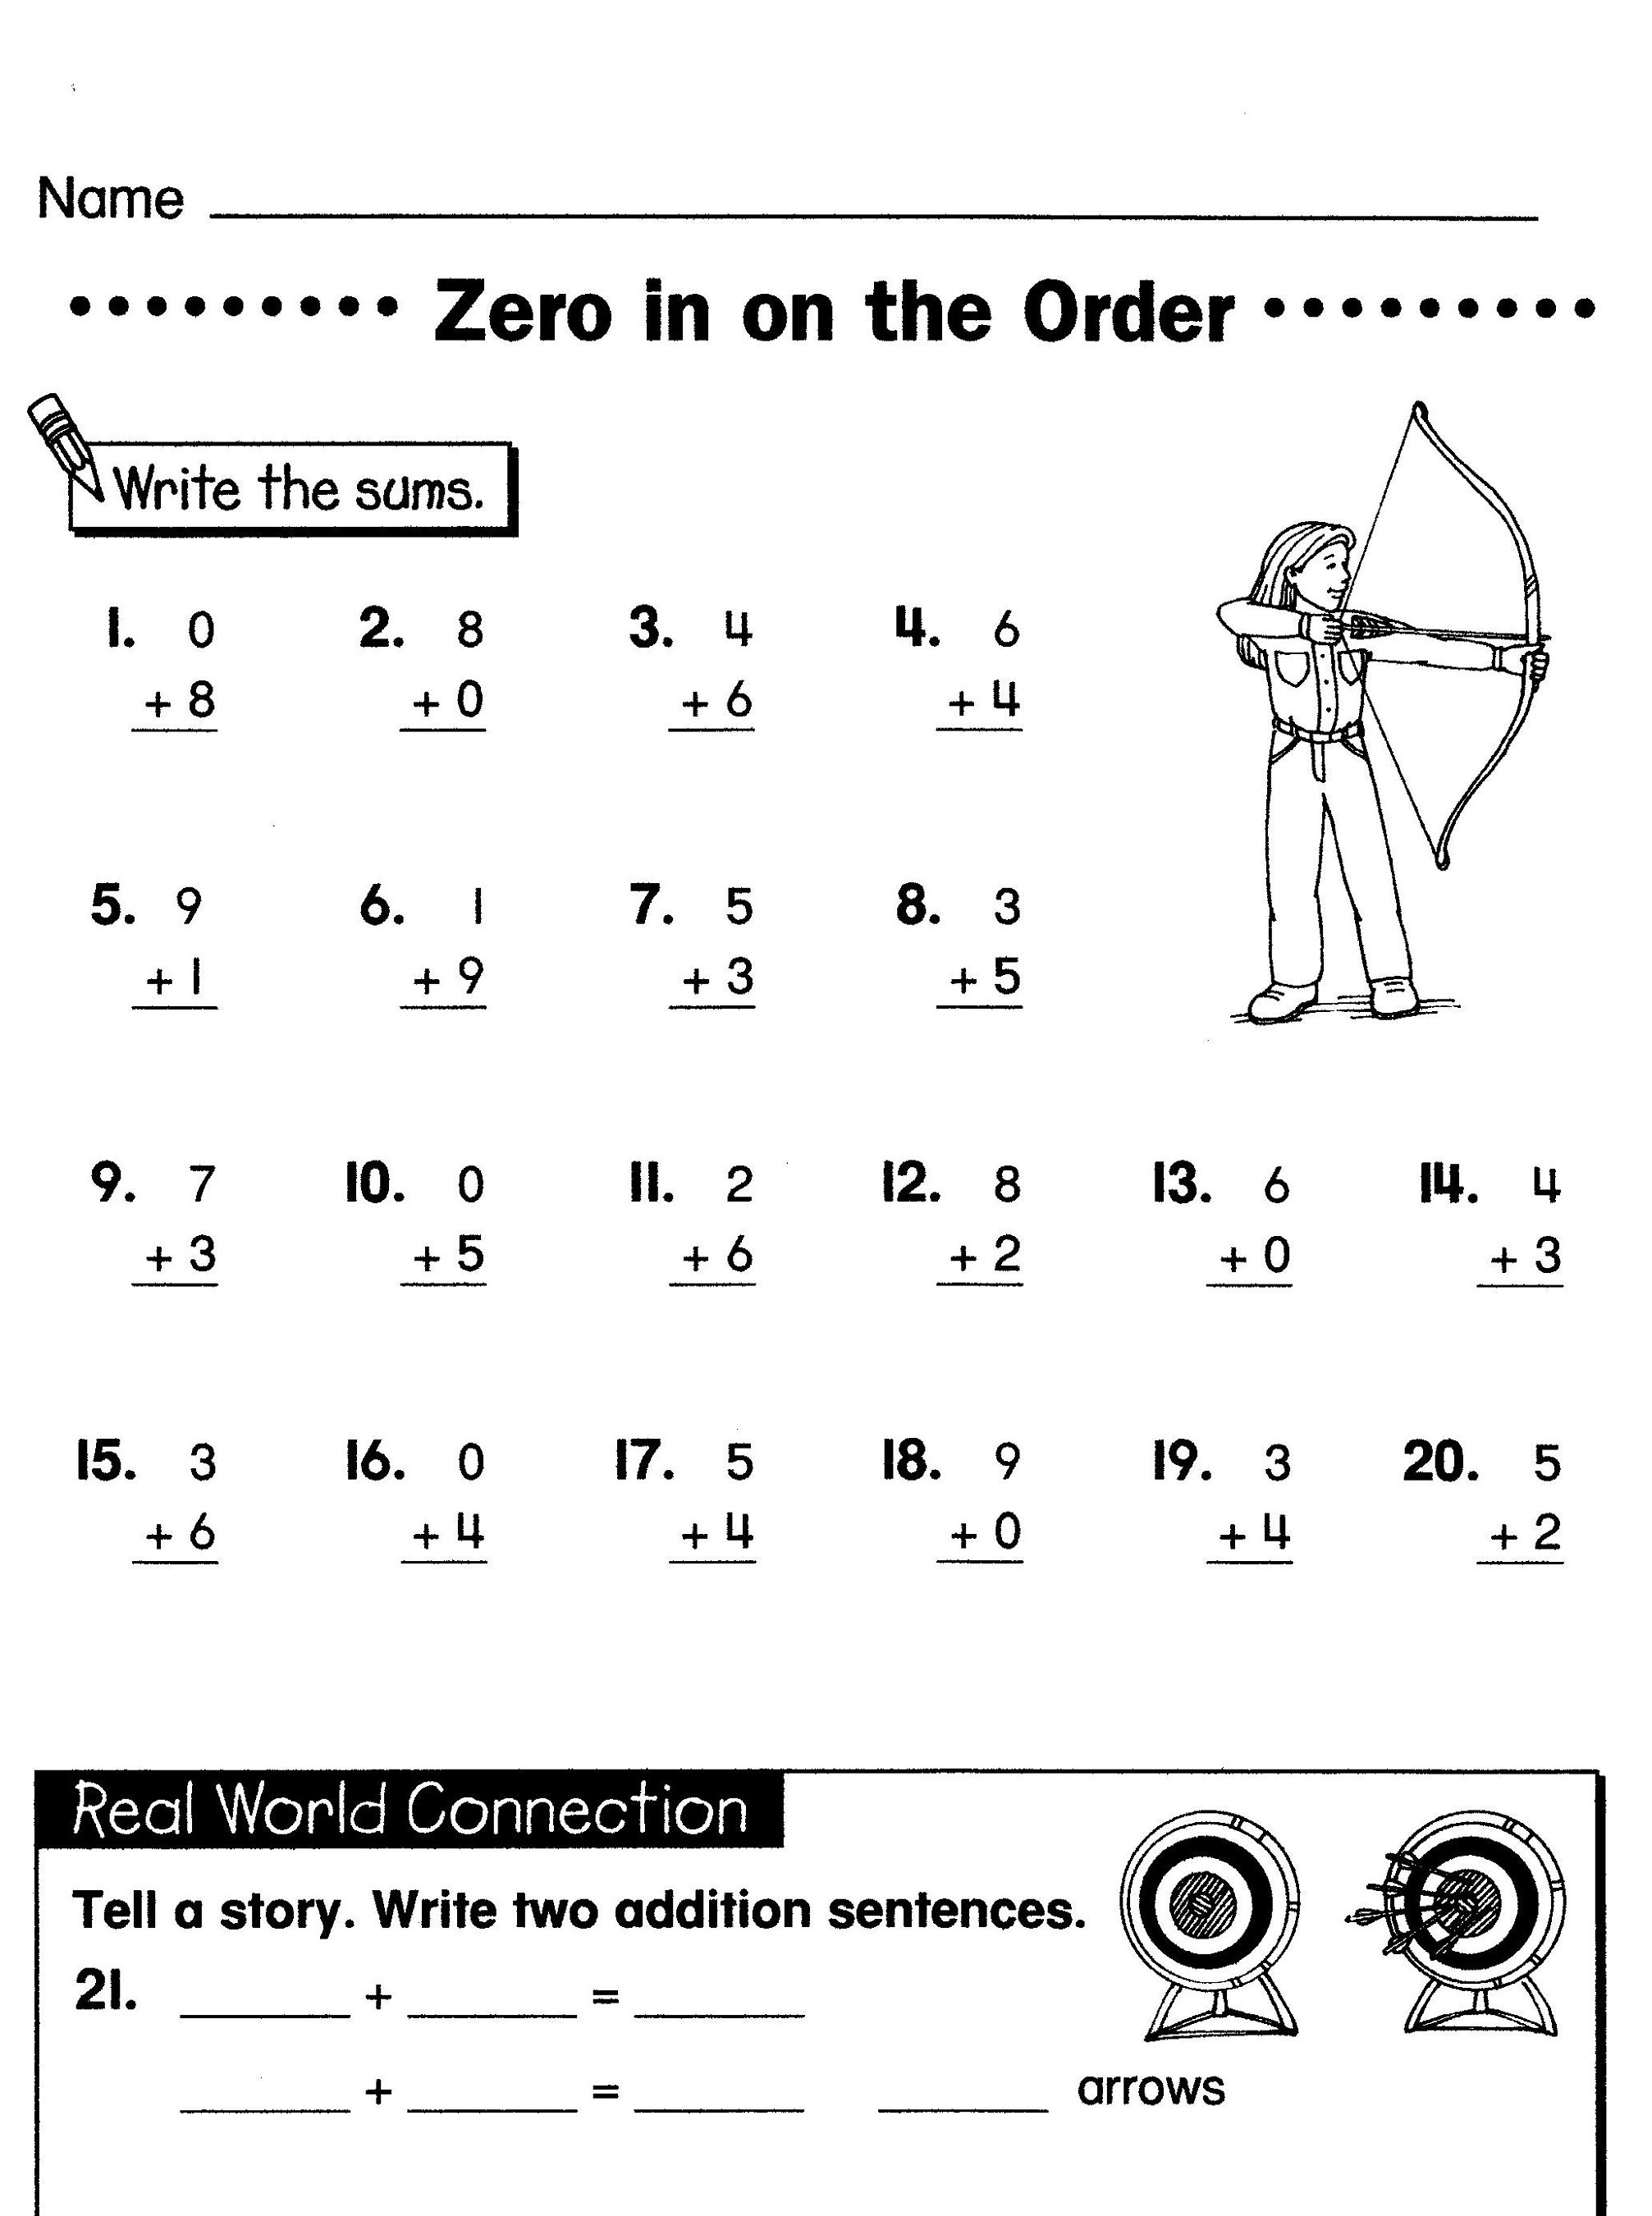 Worksheets First Grade Reading Printable Worksheets grade 1 worksheet yahoo image search results summer school math sheets for to help your first elementary learning mathematics effectively include the english a